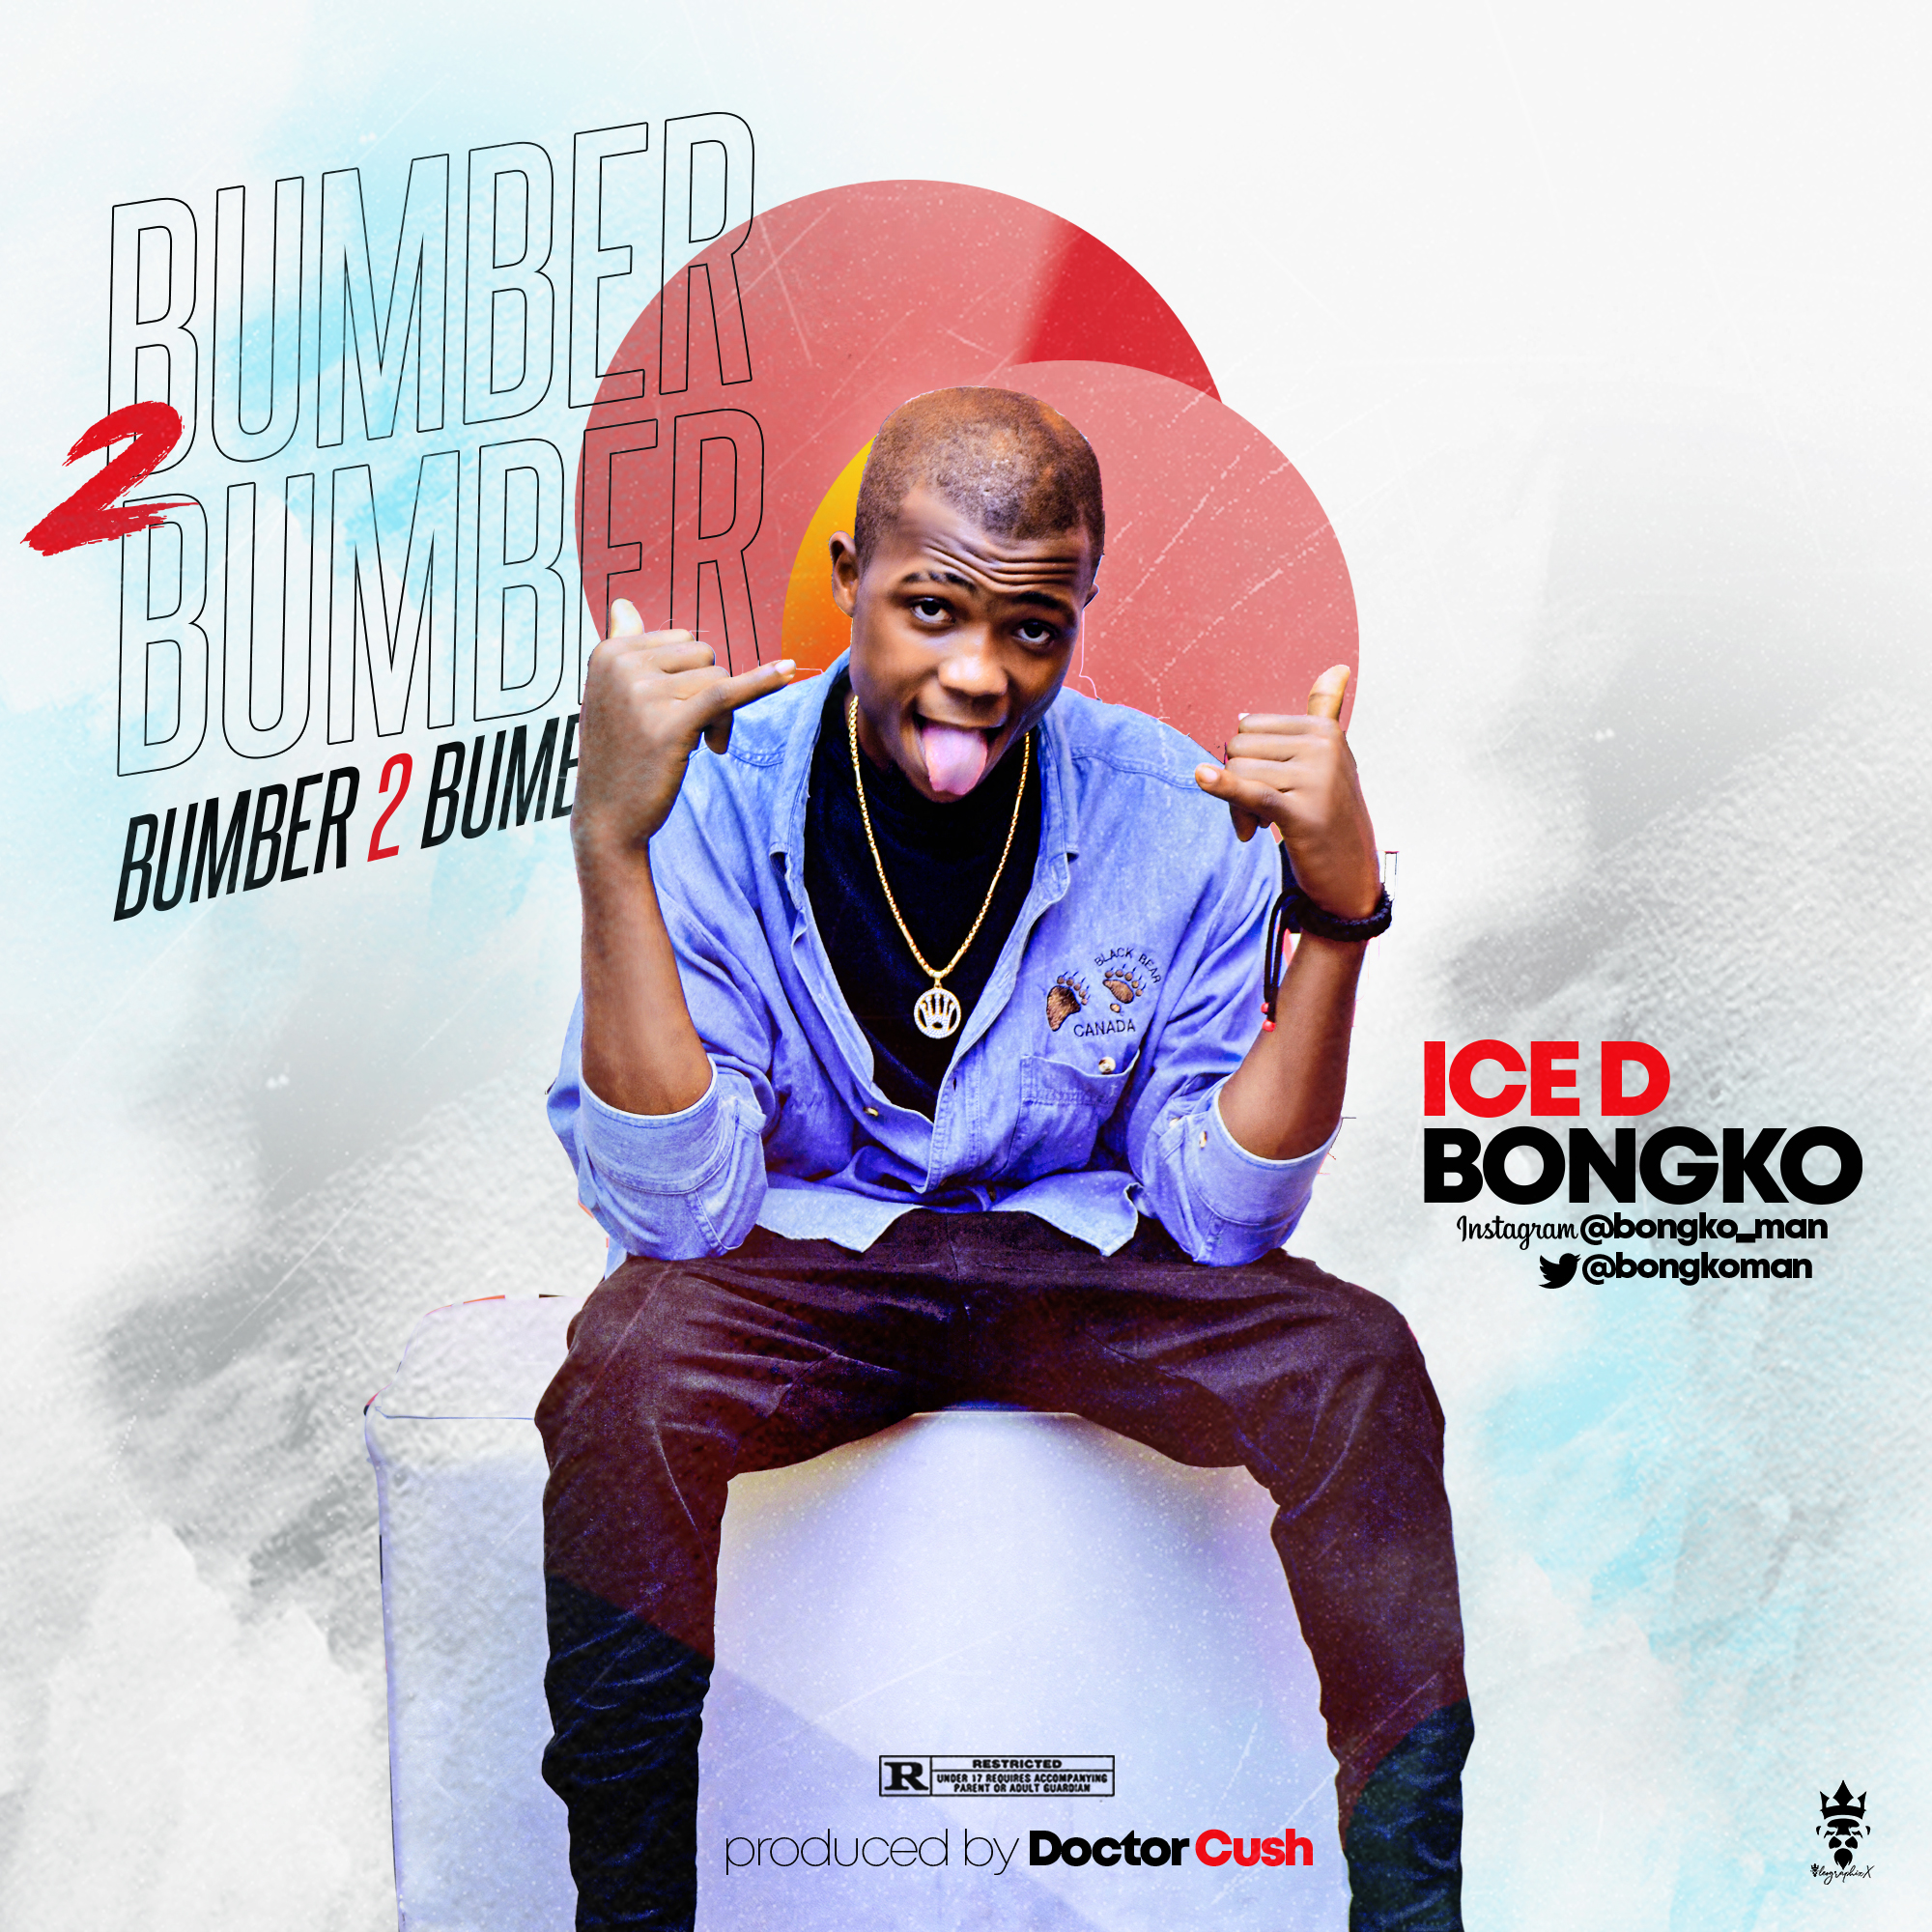 DOWNLOAD MUSIC: Ice D Bongko – Bumber 2 Bumber